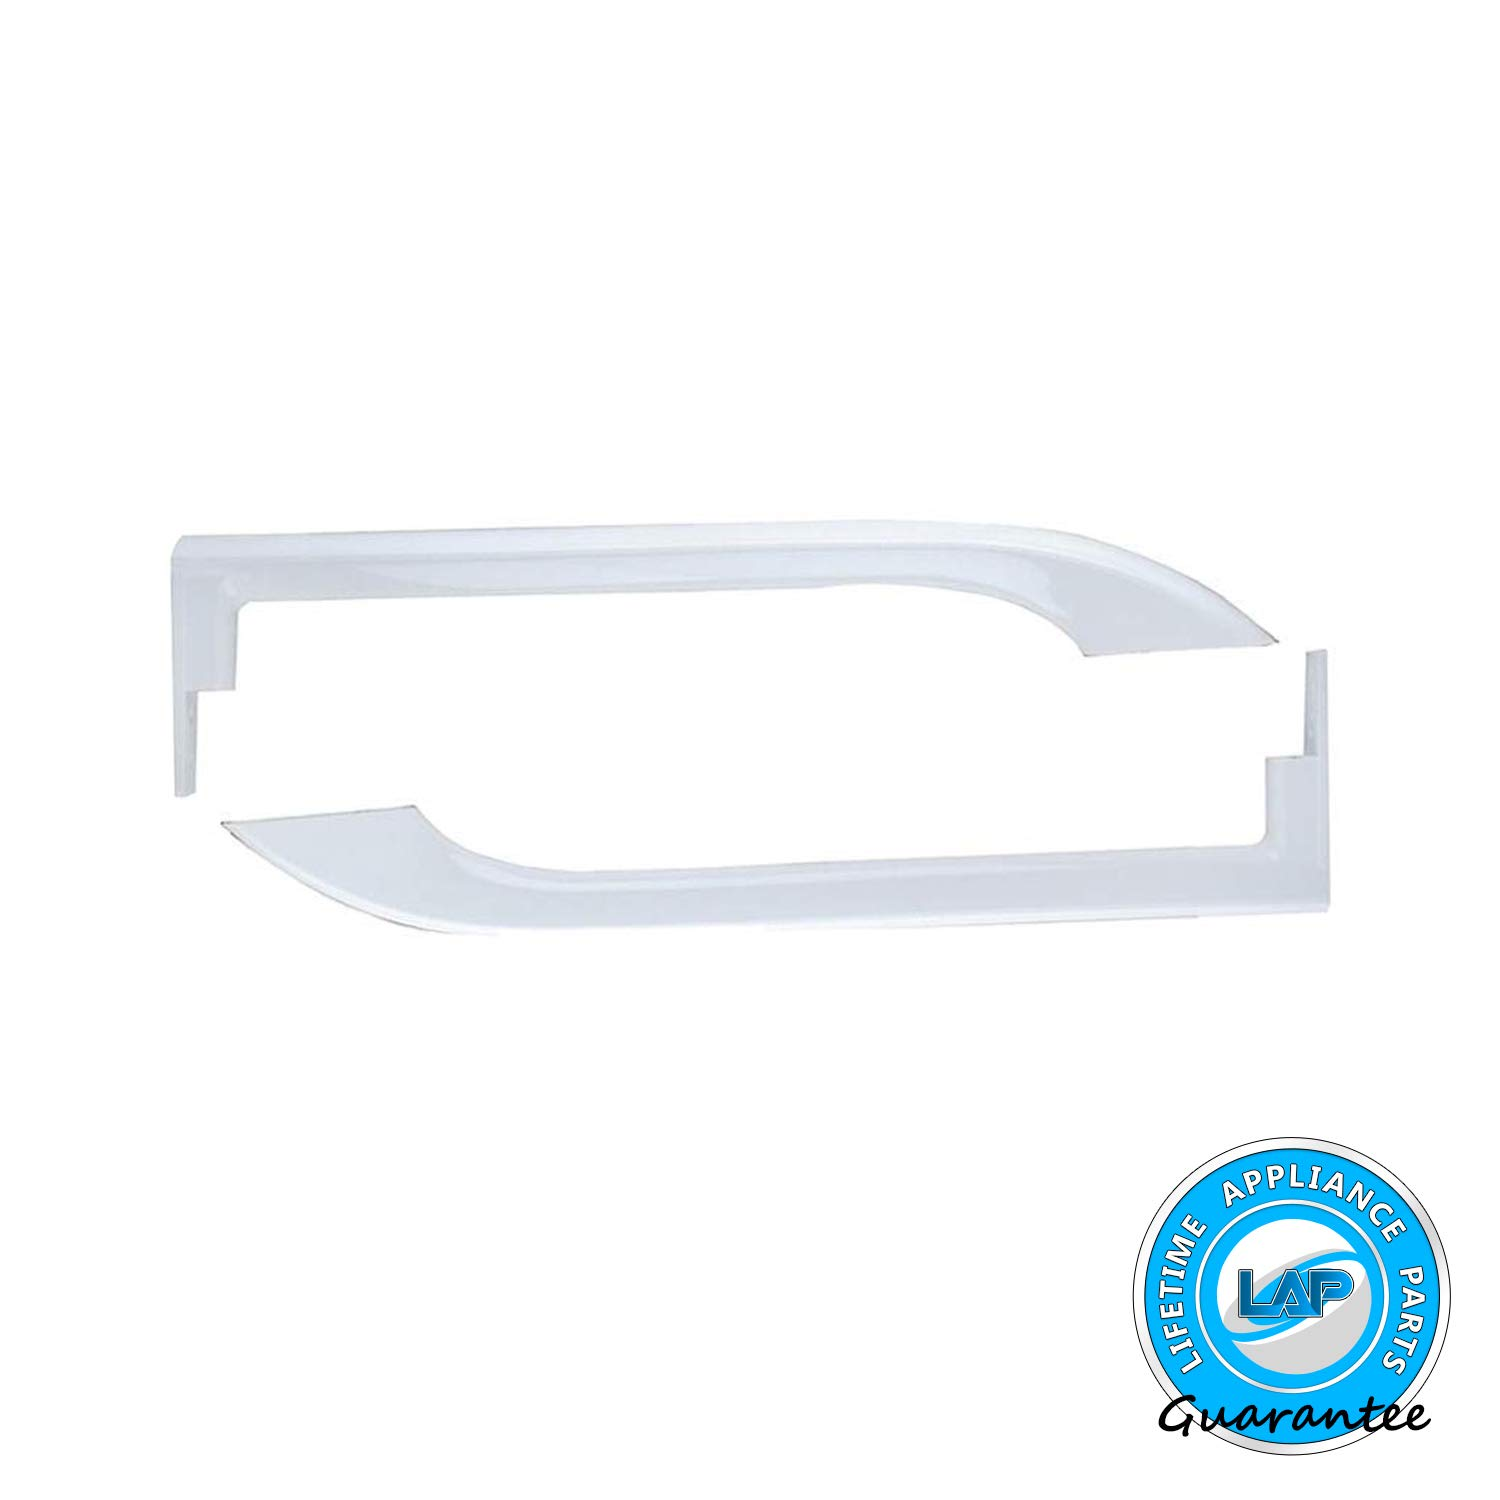 Ultra Durable 5304506469 Door Handles Compatible with Frigidaire Refrigerator - 5304504507, 5304486359, 242059501, 242059504-1 Year Warranty!